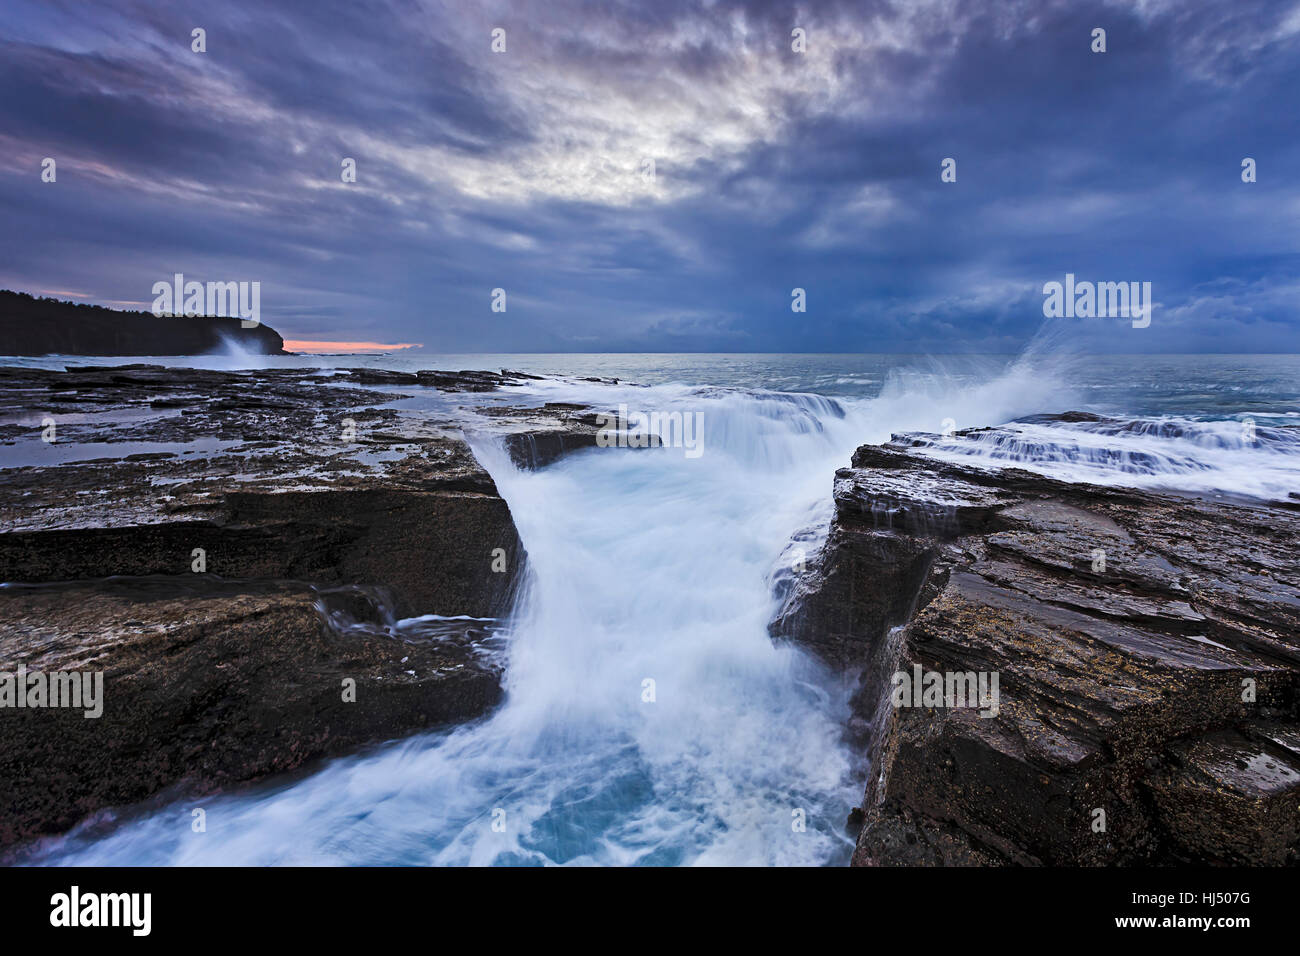 Rugged coastline of Australia Sydney northern beaches at stormy sunrise when strong waves hit crack in coast sandstone - Stock Image